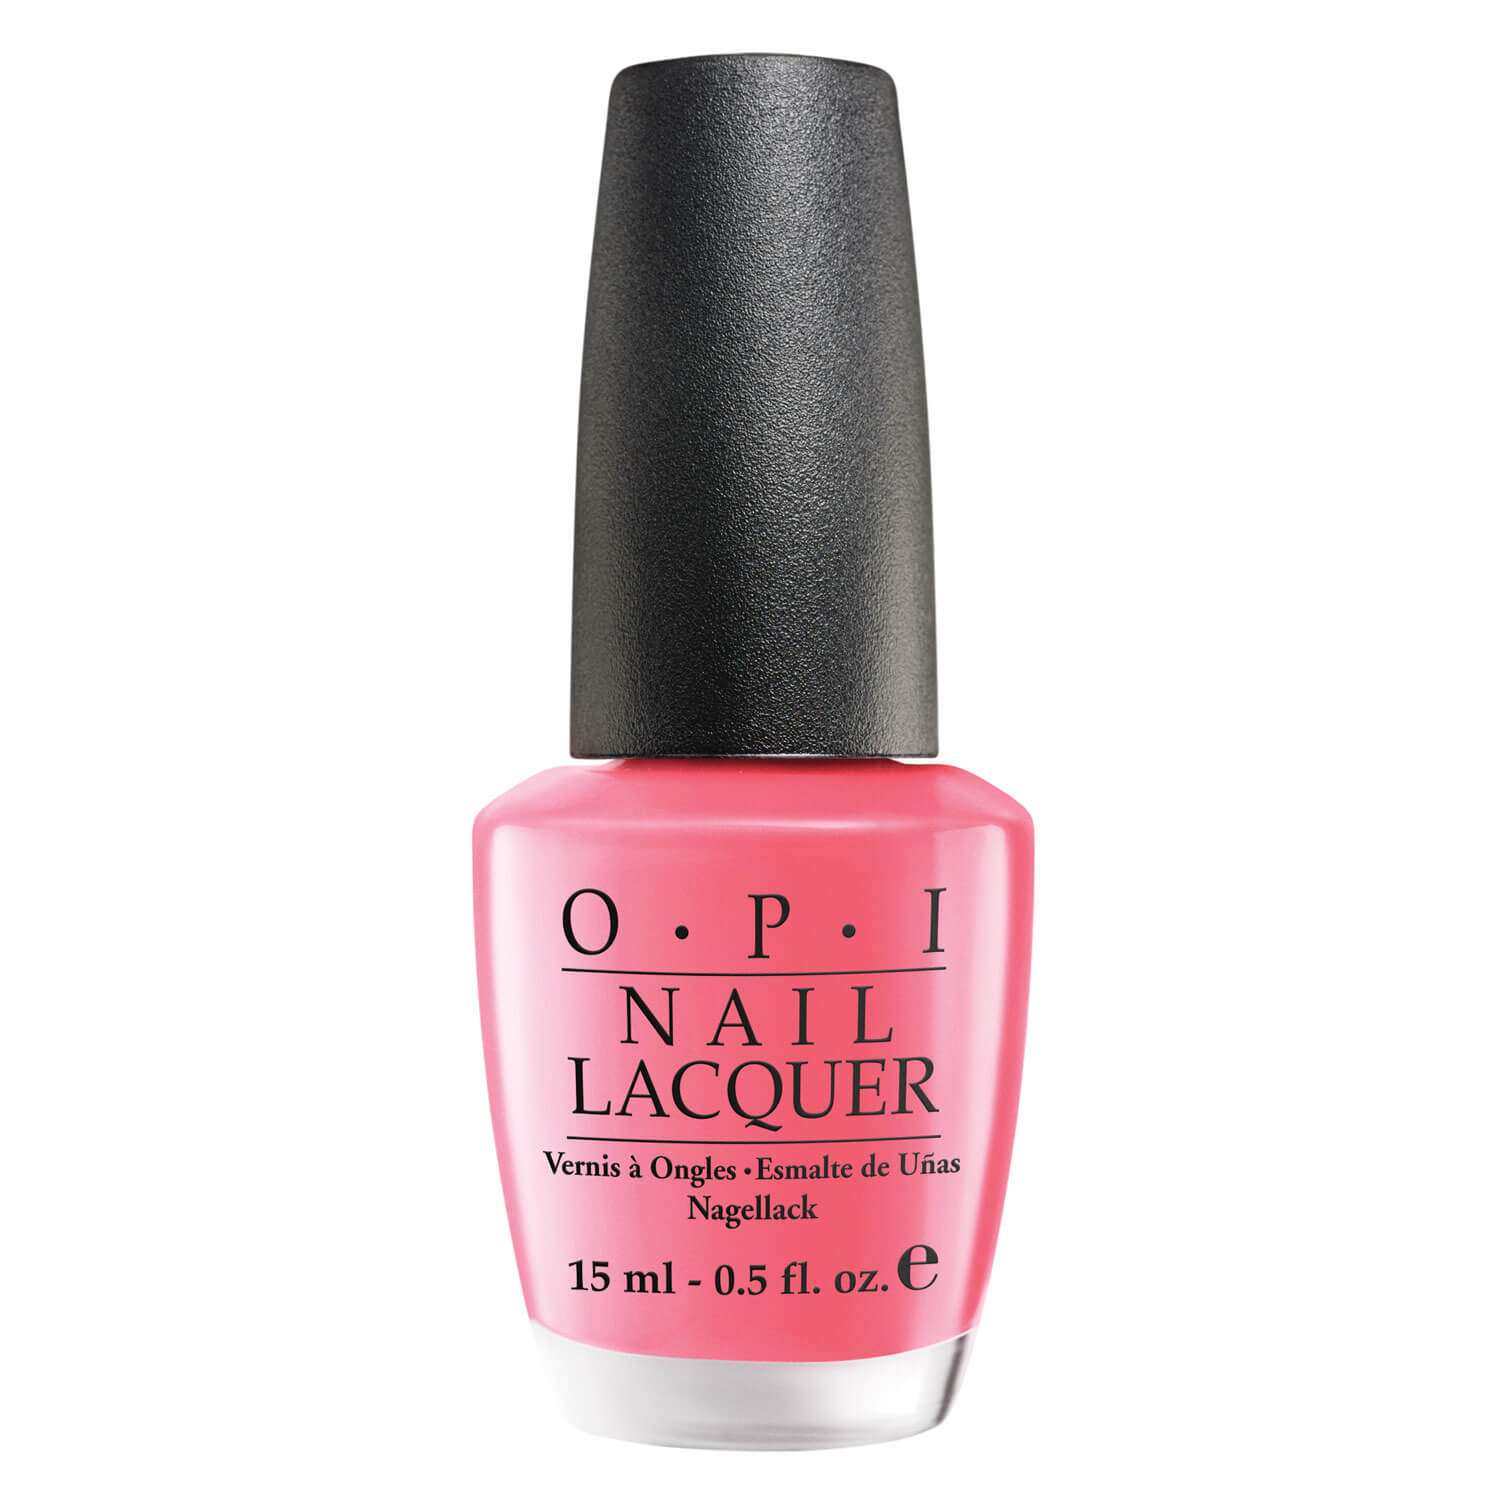 discontinued opi nail polish Target - induced.info